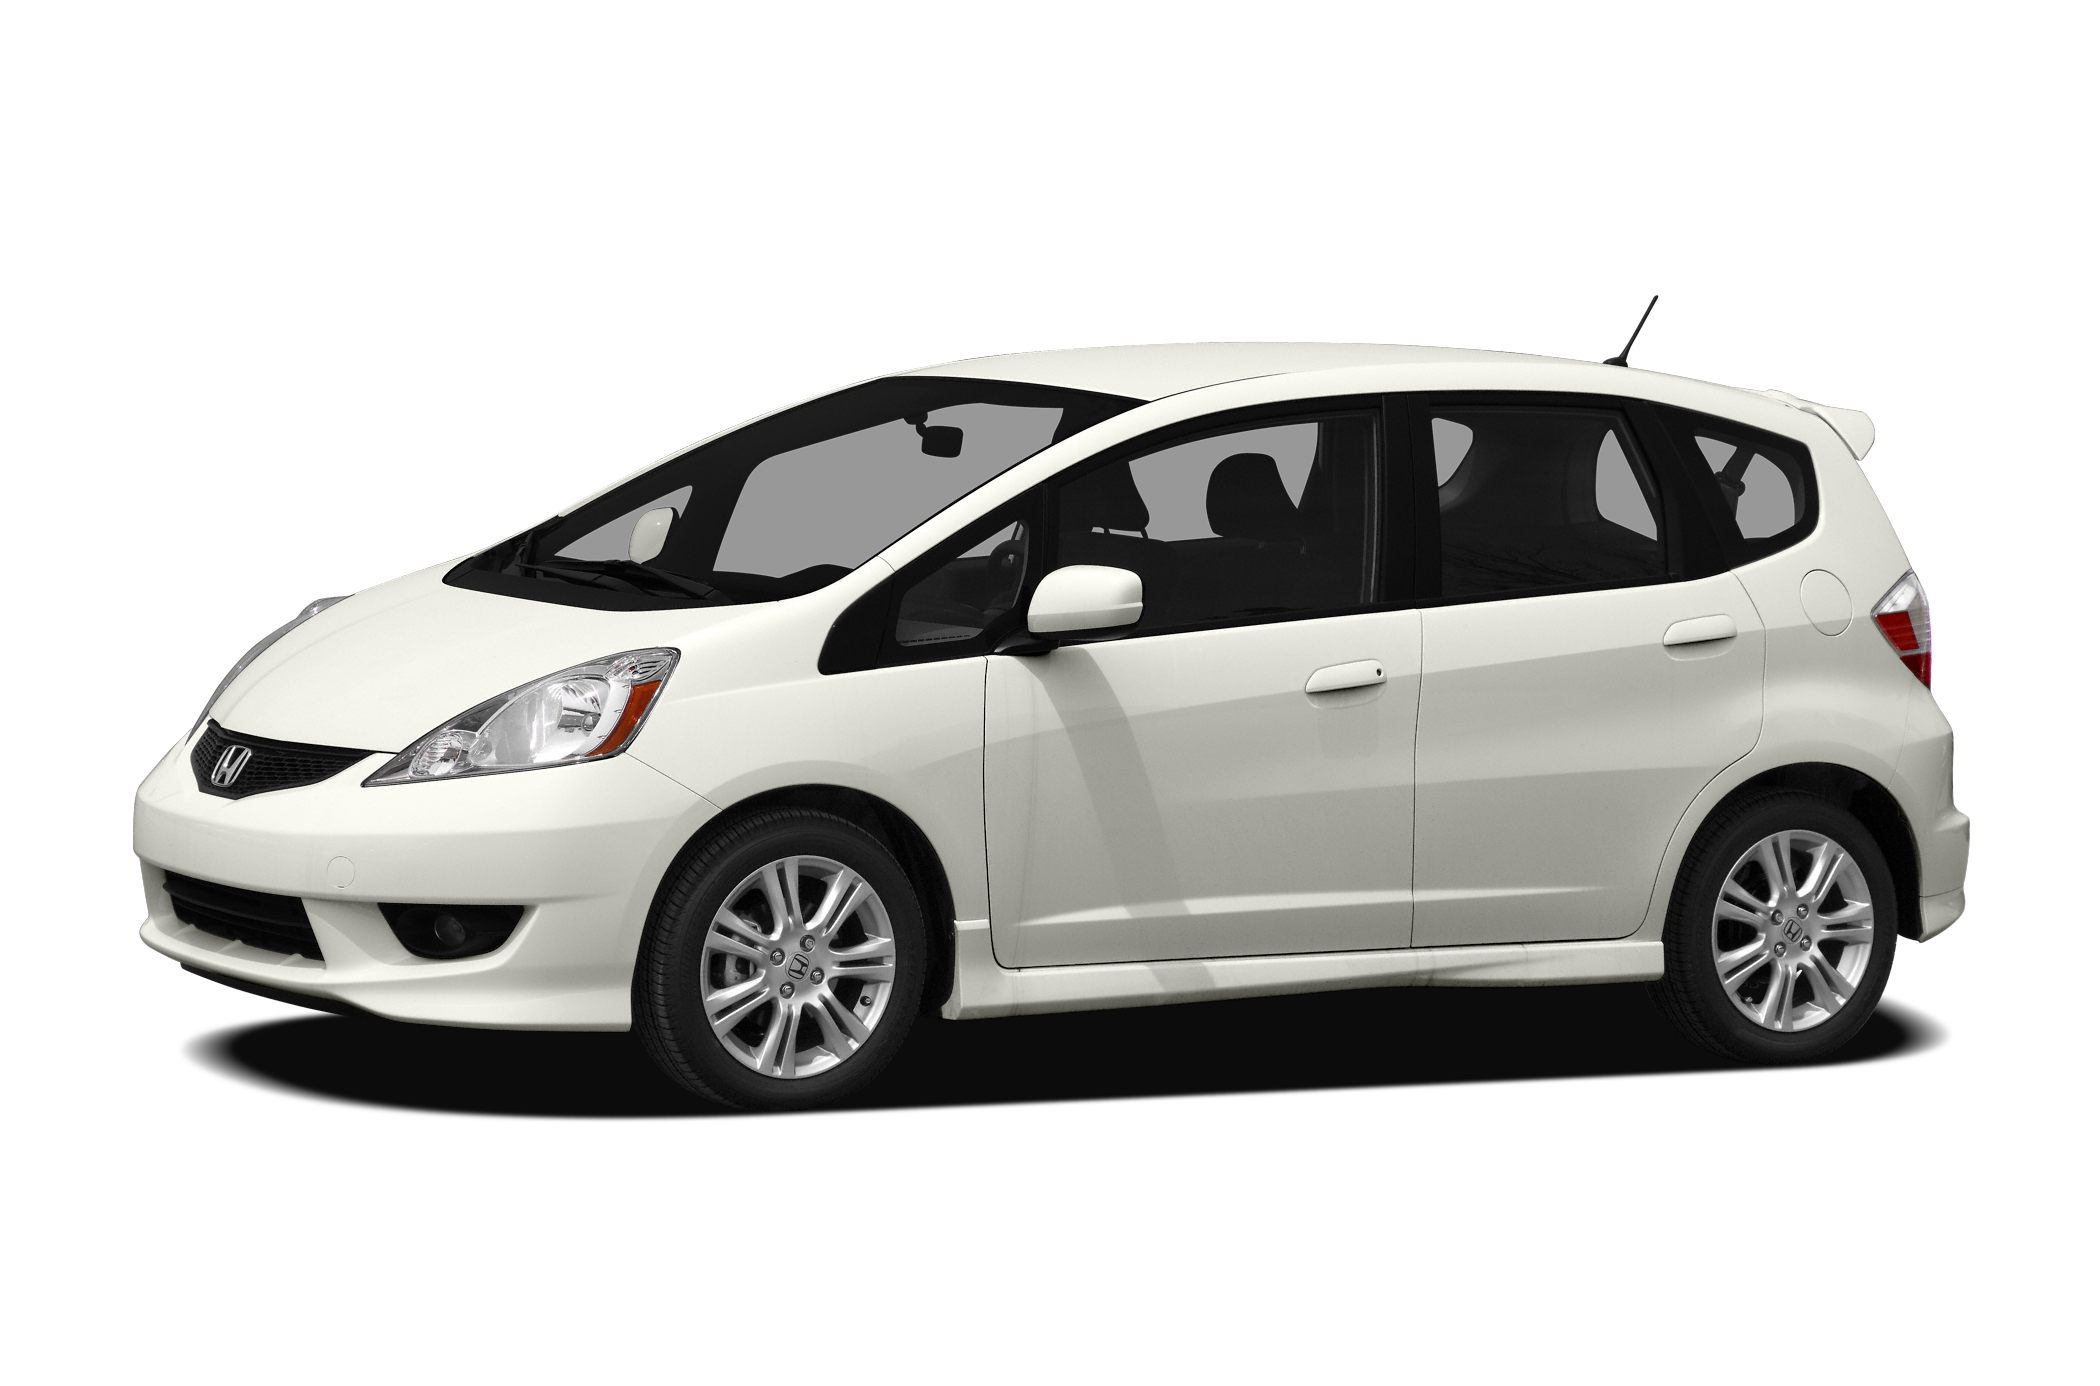 2010 Honda Fit Sport Hatchback for sale in Jonesboro for $15,990 with 50,206 miles